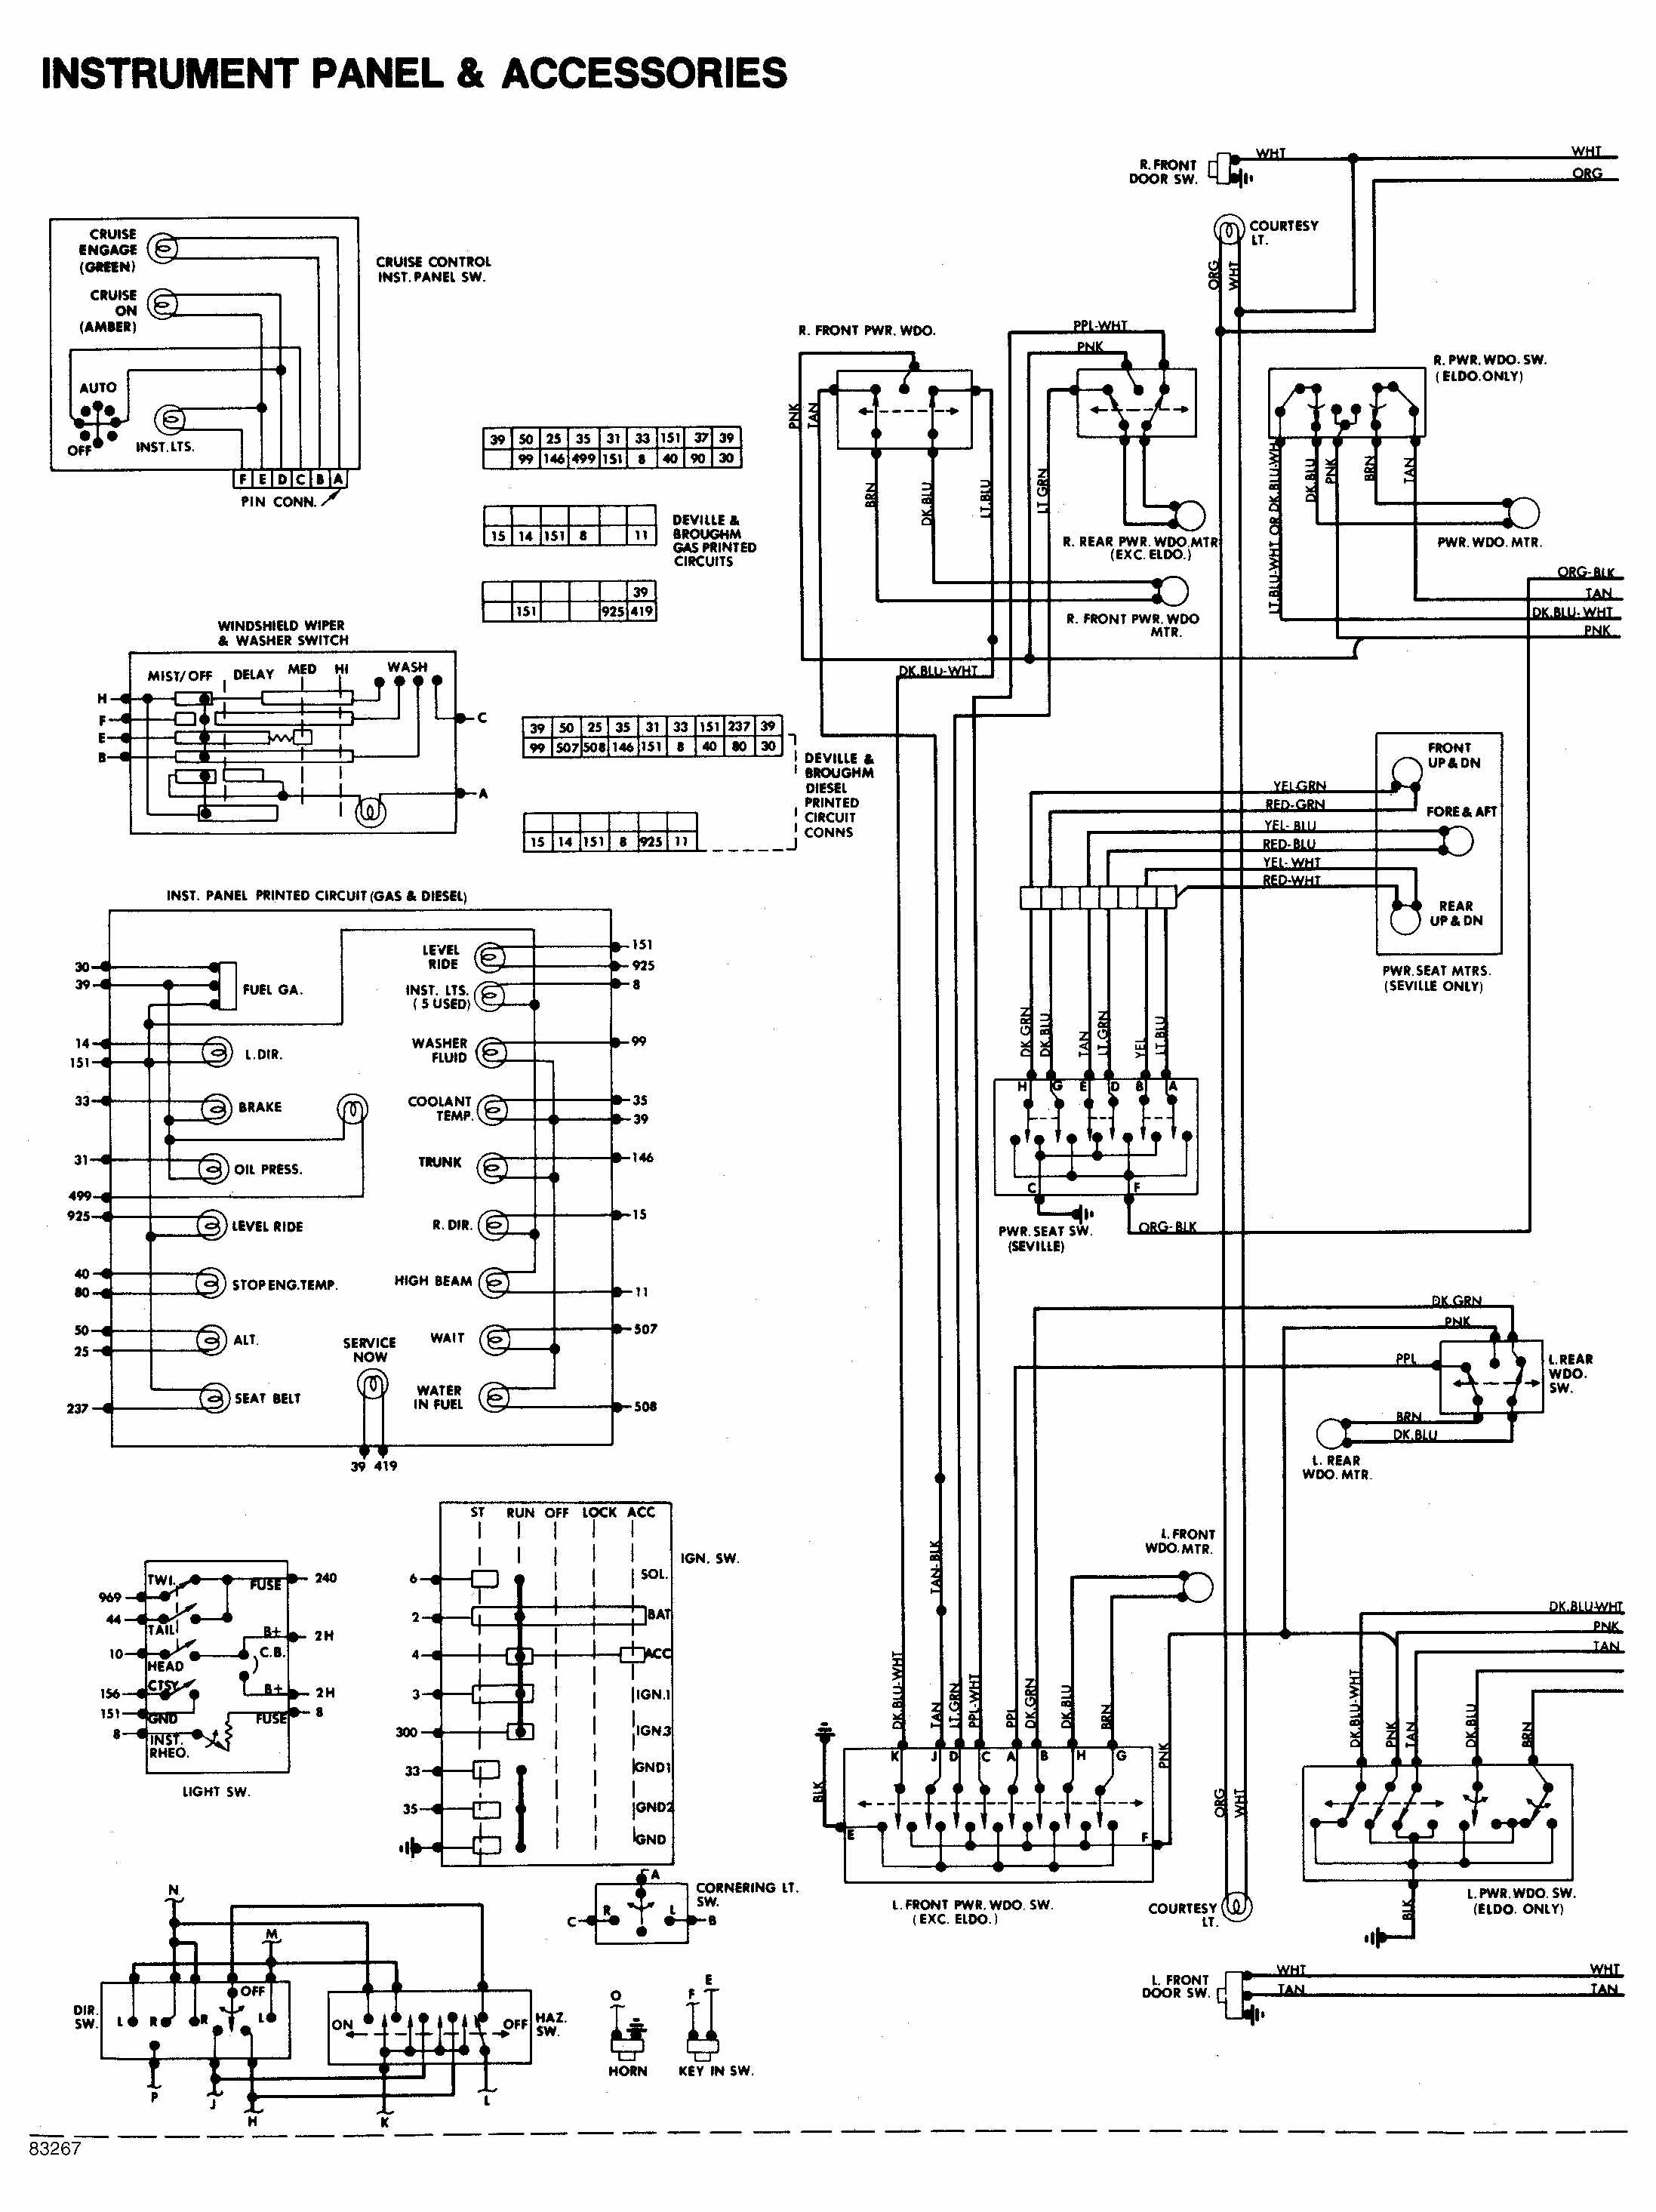 instrument panel and accessories wiring diagram of 1984 cadillac deville 84 corvette wiring diagram 84 gmc column switches \u2022 wiring GMC Fuse Box Diagrams at mifinder.co